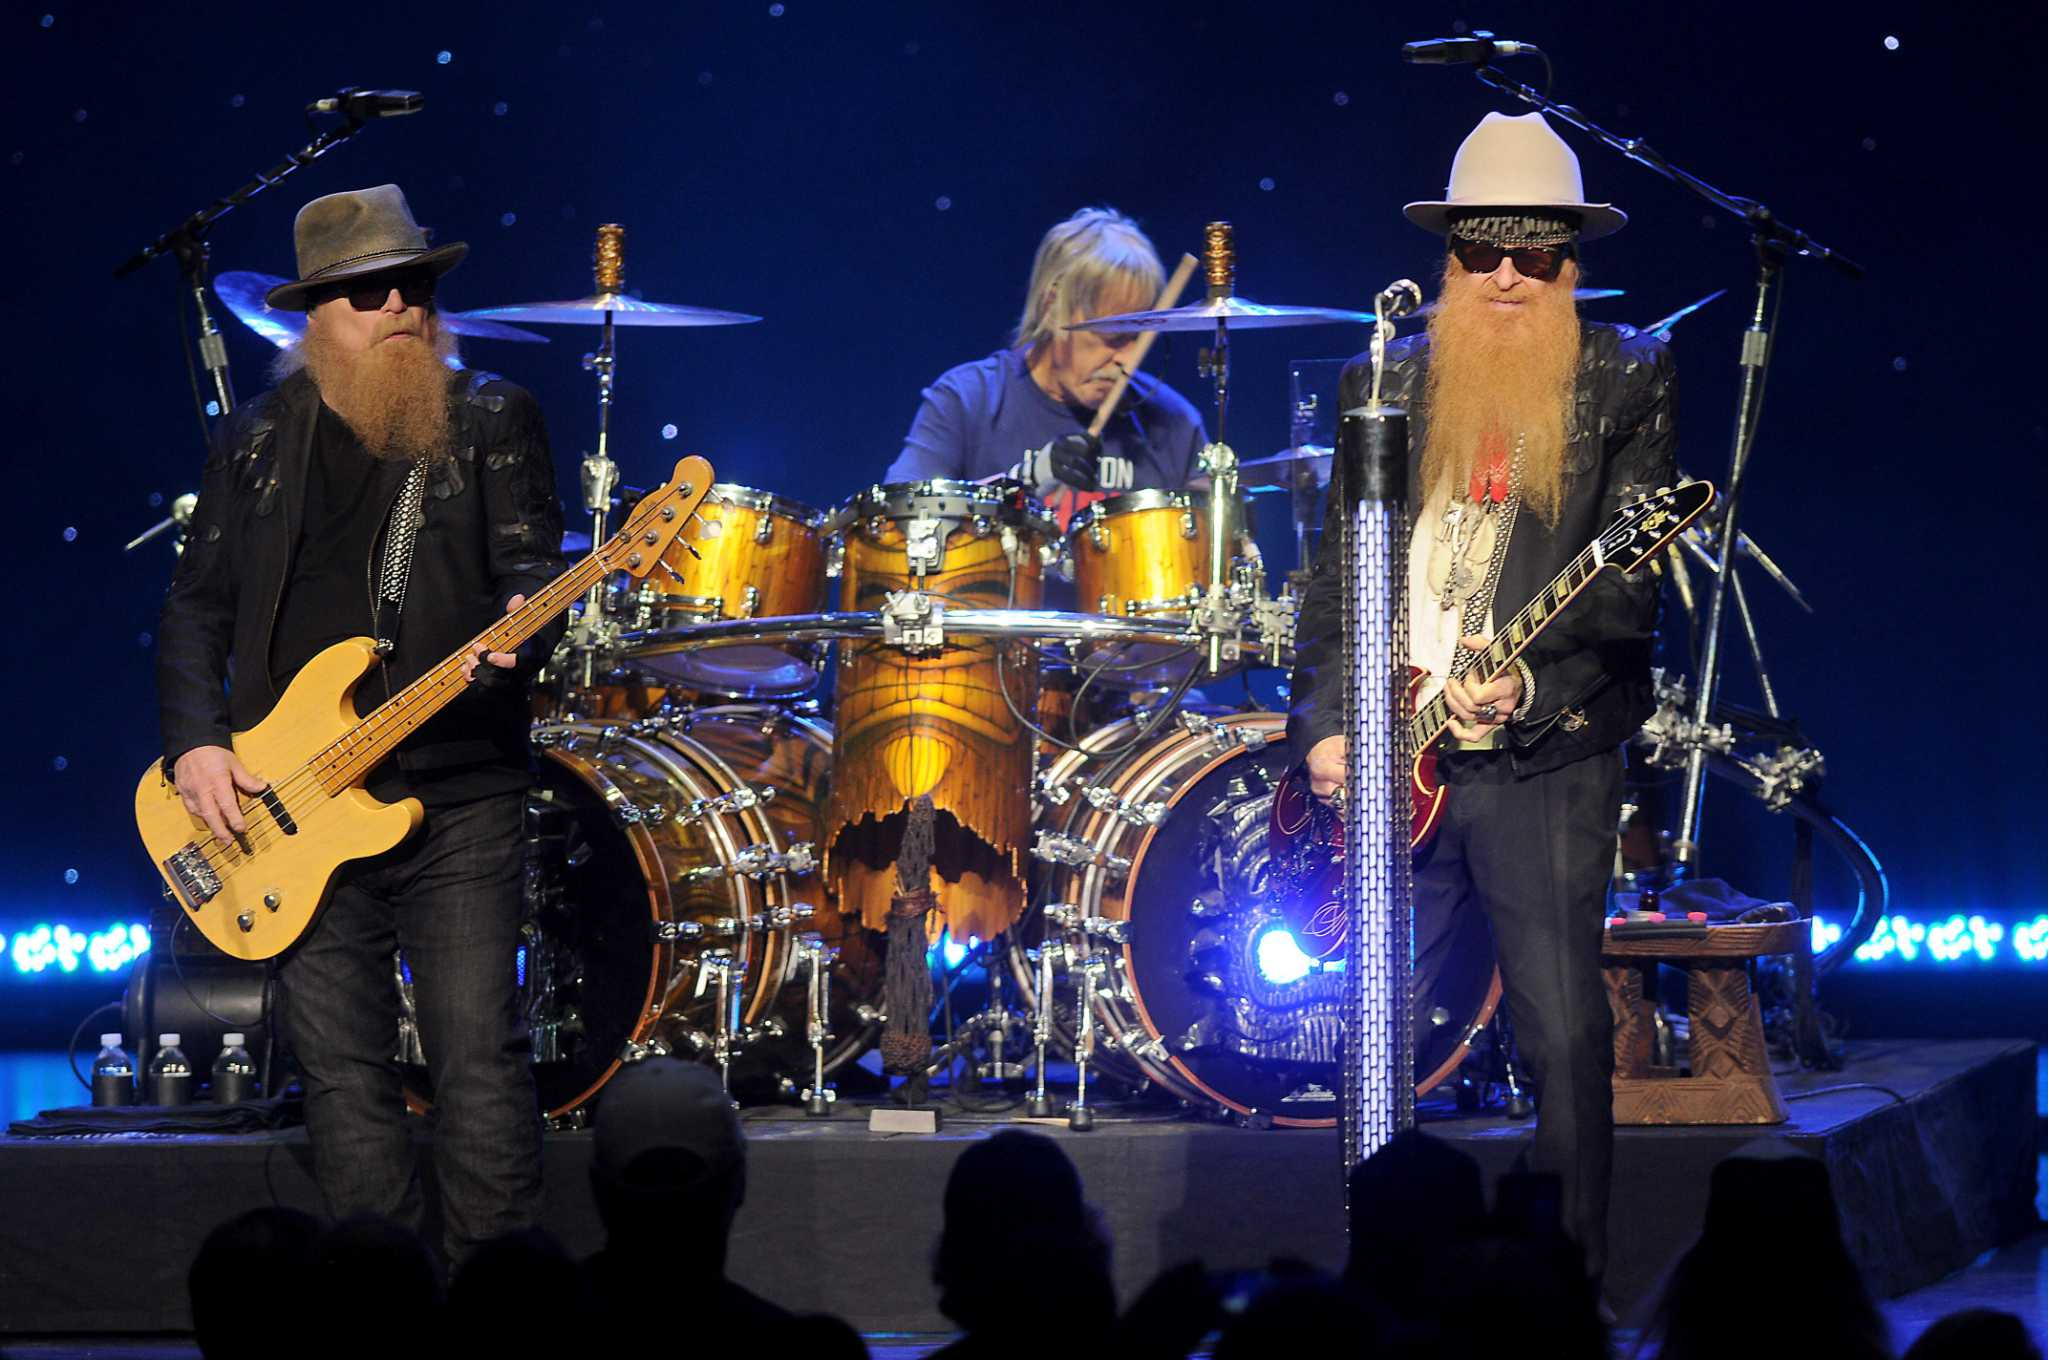 Weird for beards: Celebrating 50 years of ZZ Top